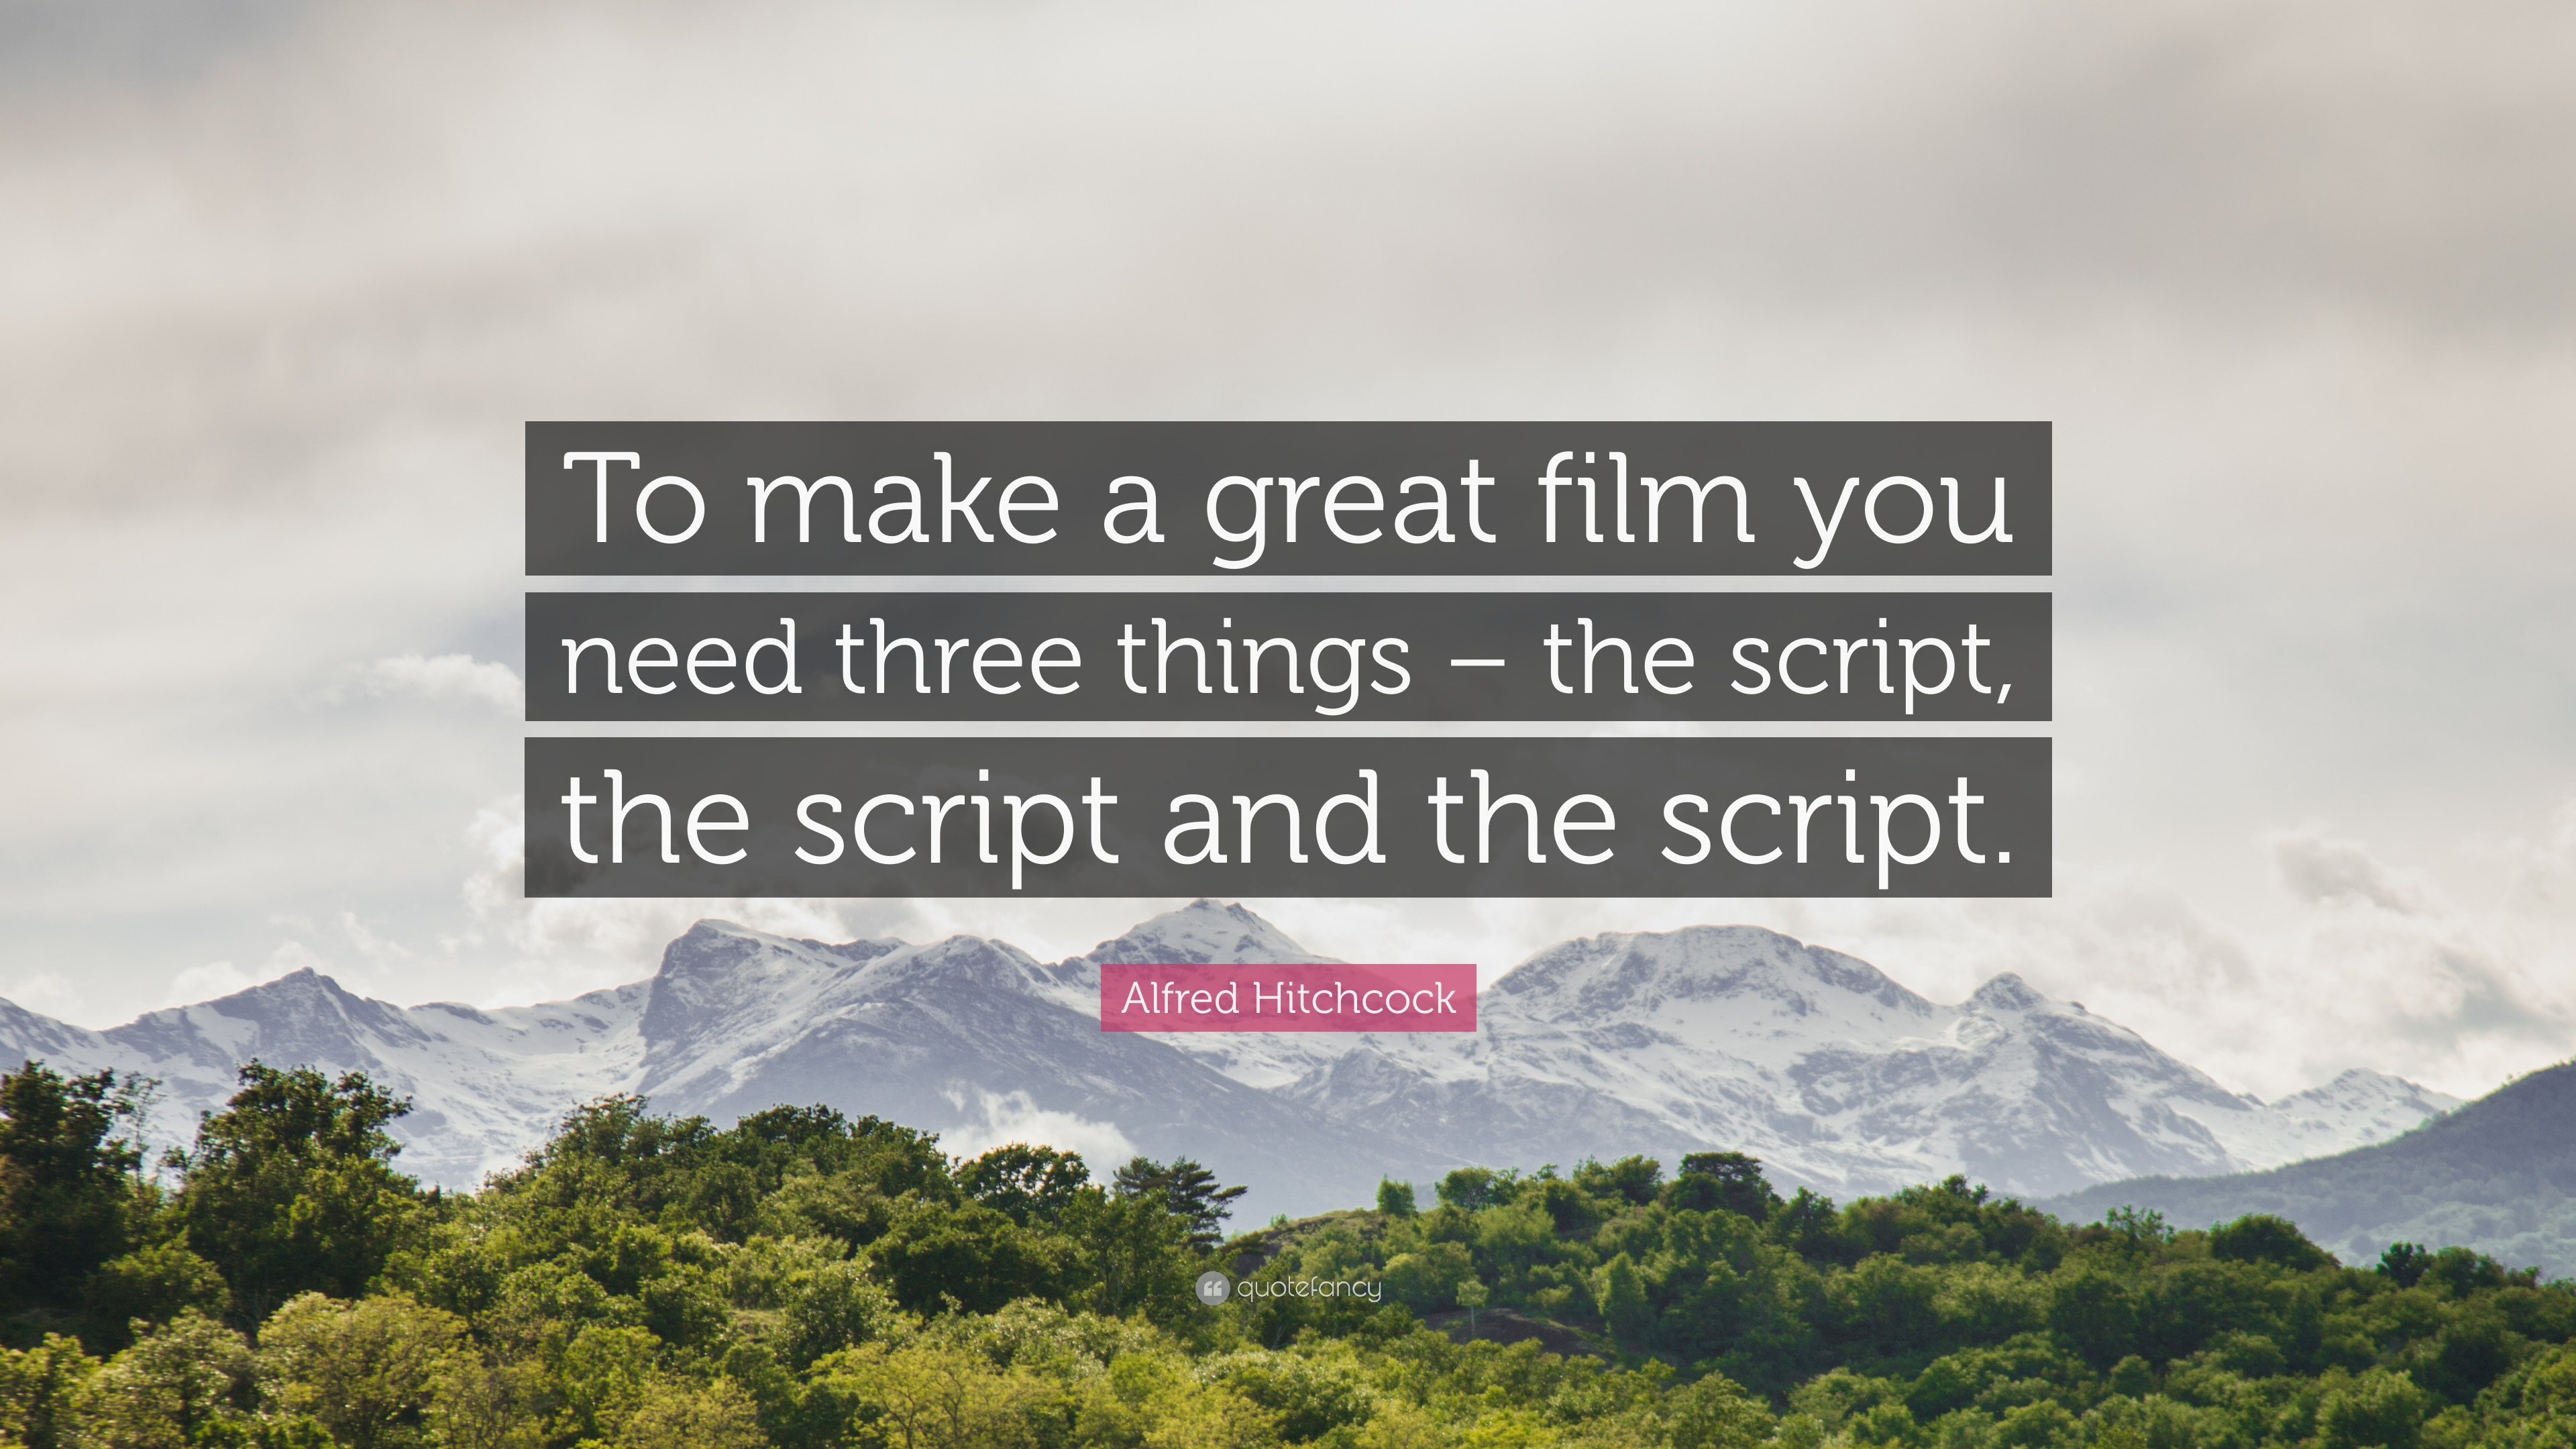 274409 Alfred Hitchcock Quote To make a great film you need three things - Pro tips for creating explainer videos